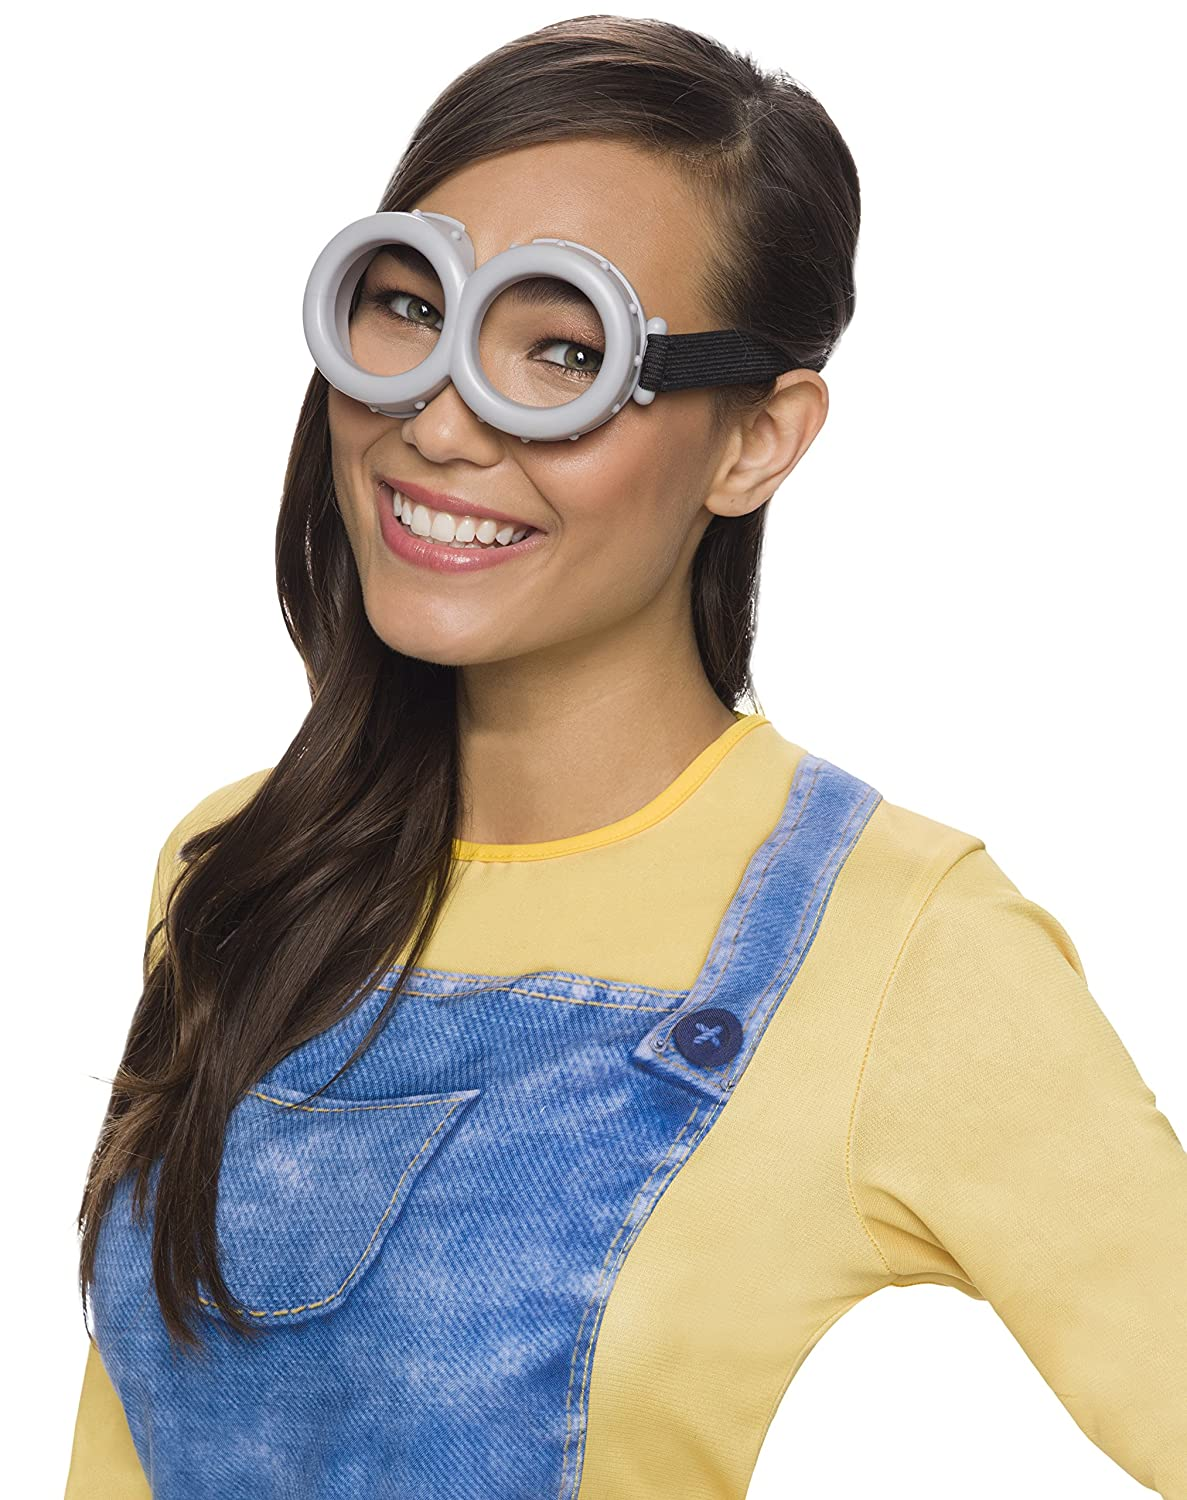 Rubie's Costume Co Men's Minion Goggles Rubies Costumes - Apparel 36720